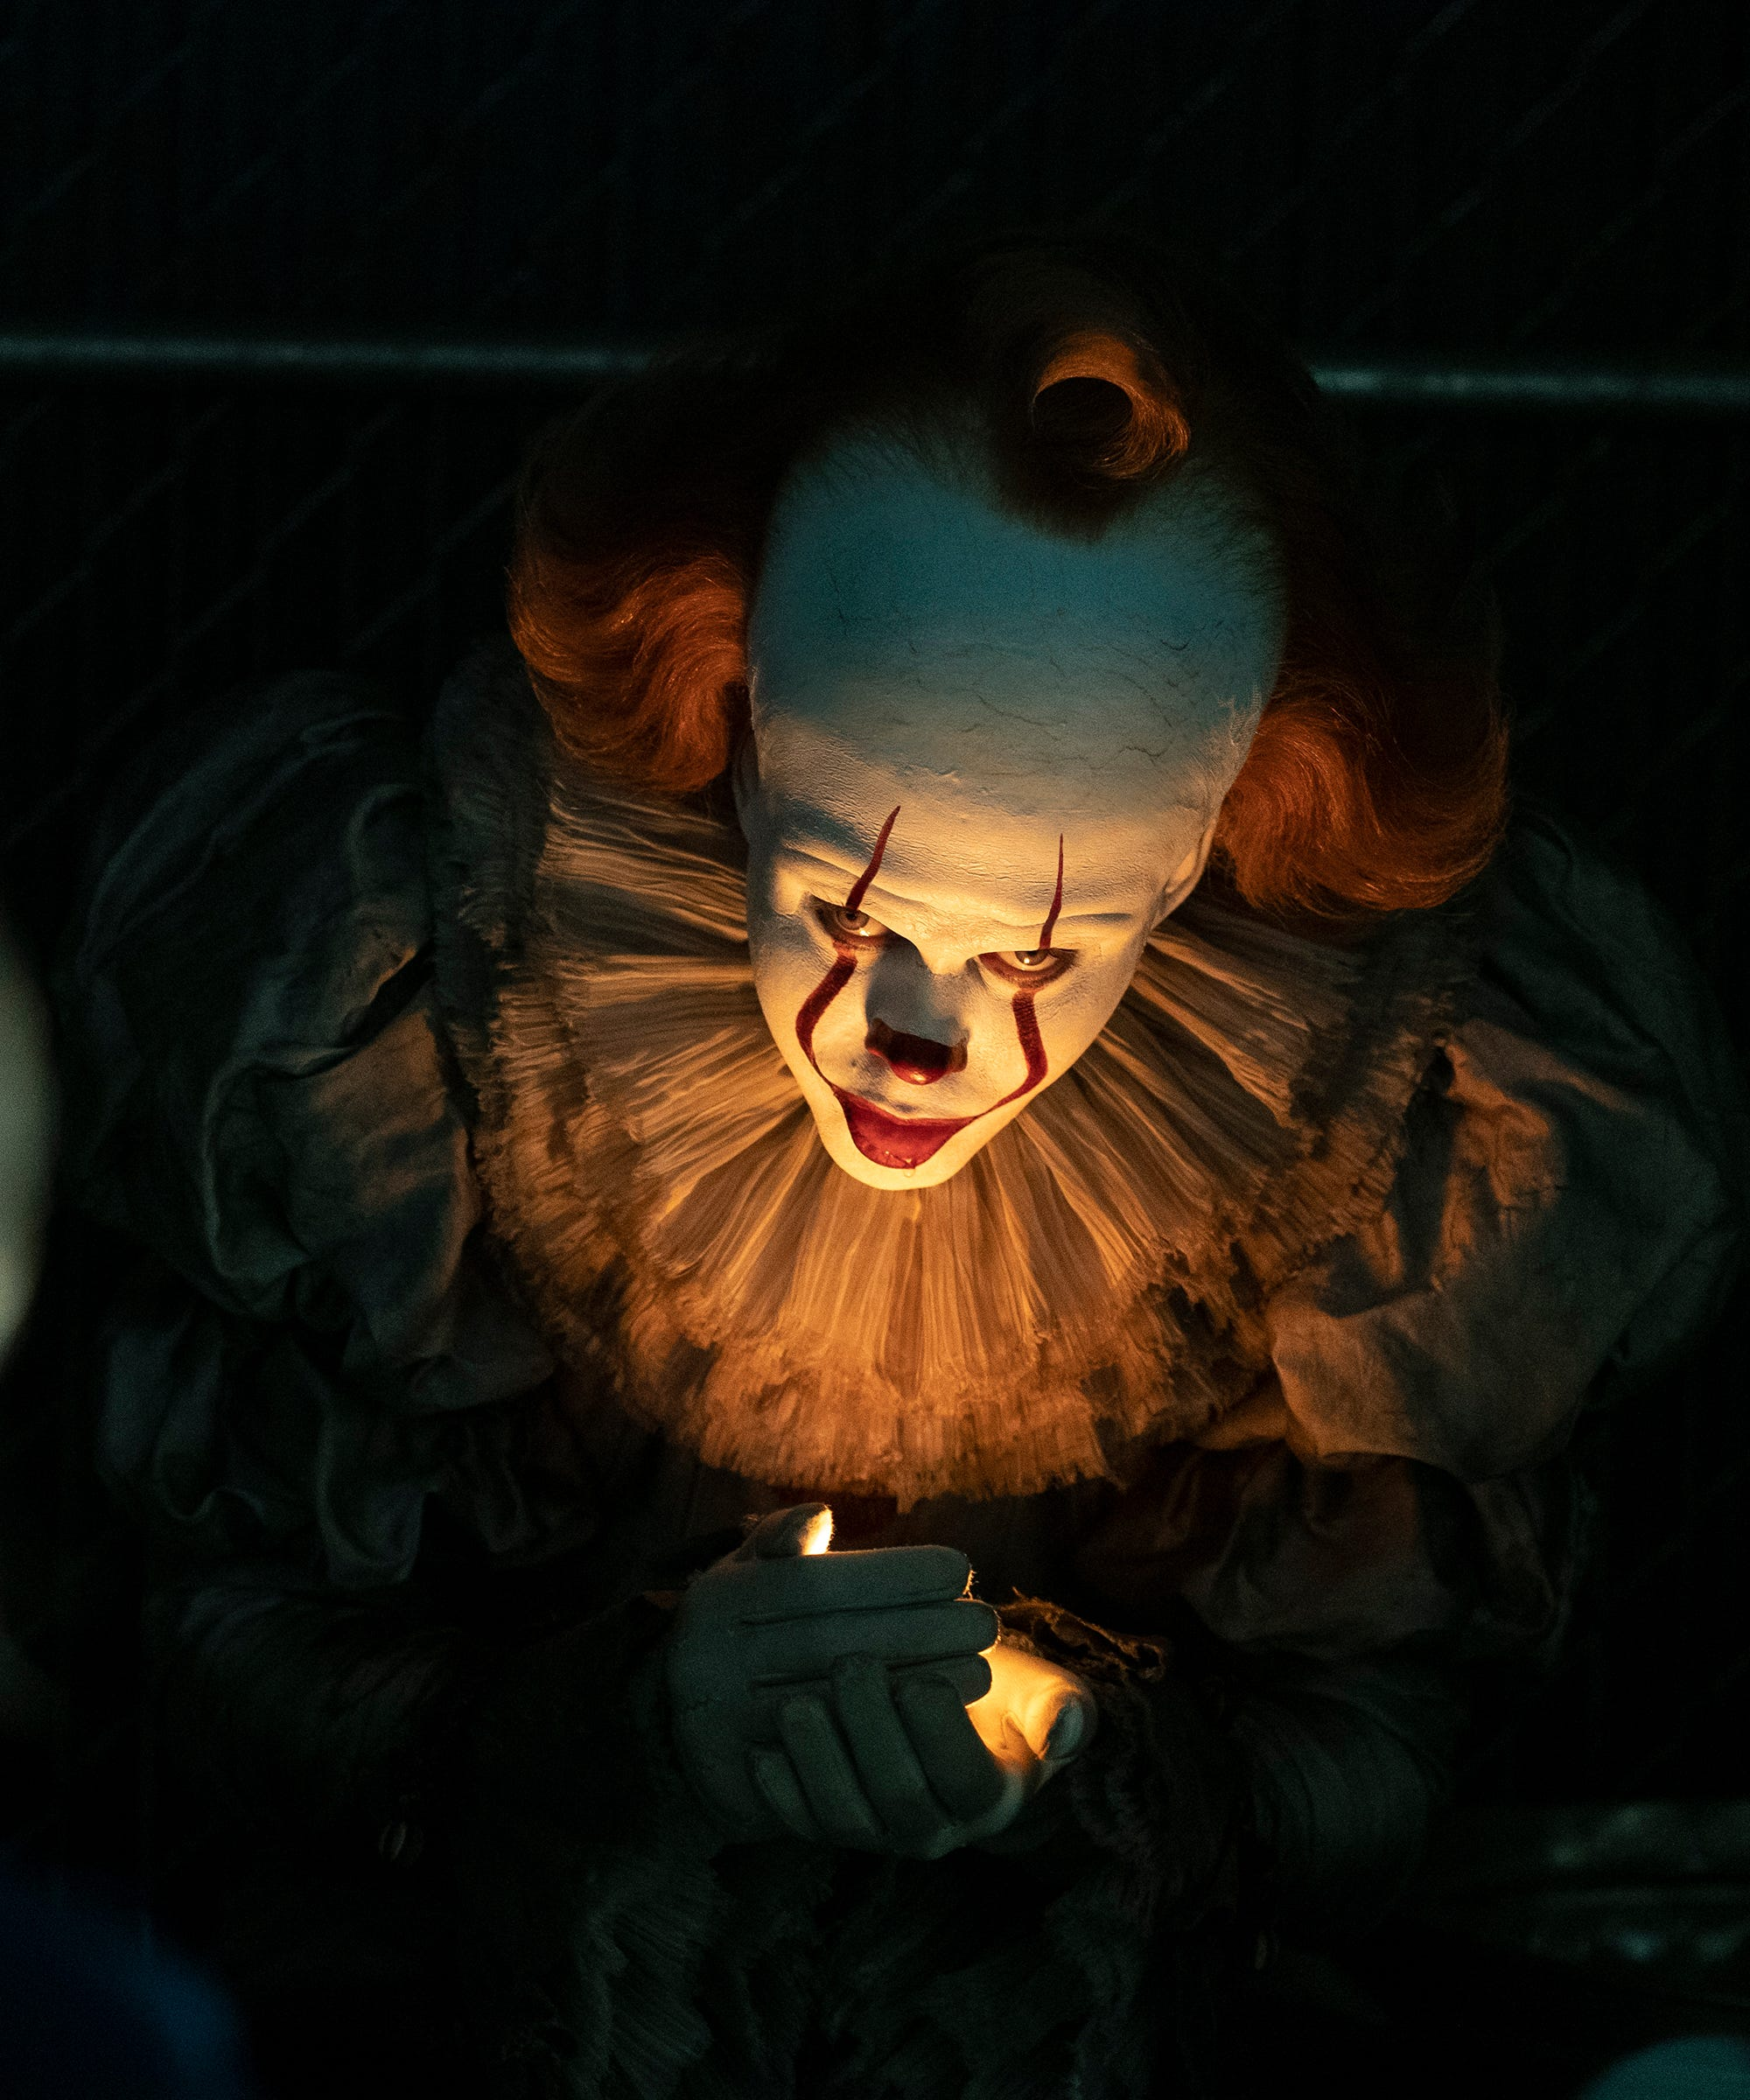 Why Is IT Chapter Two Set 27 Years After The First Movie?